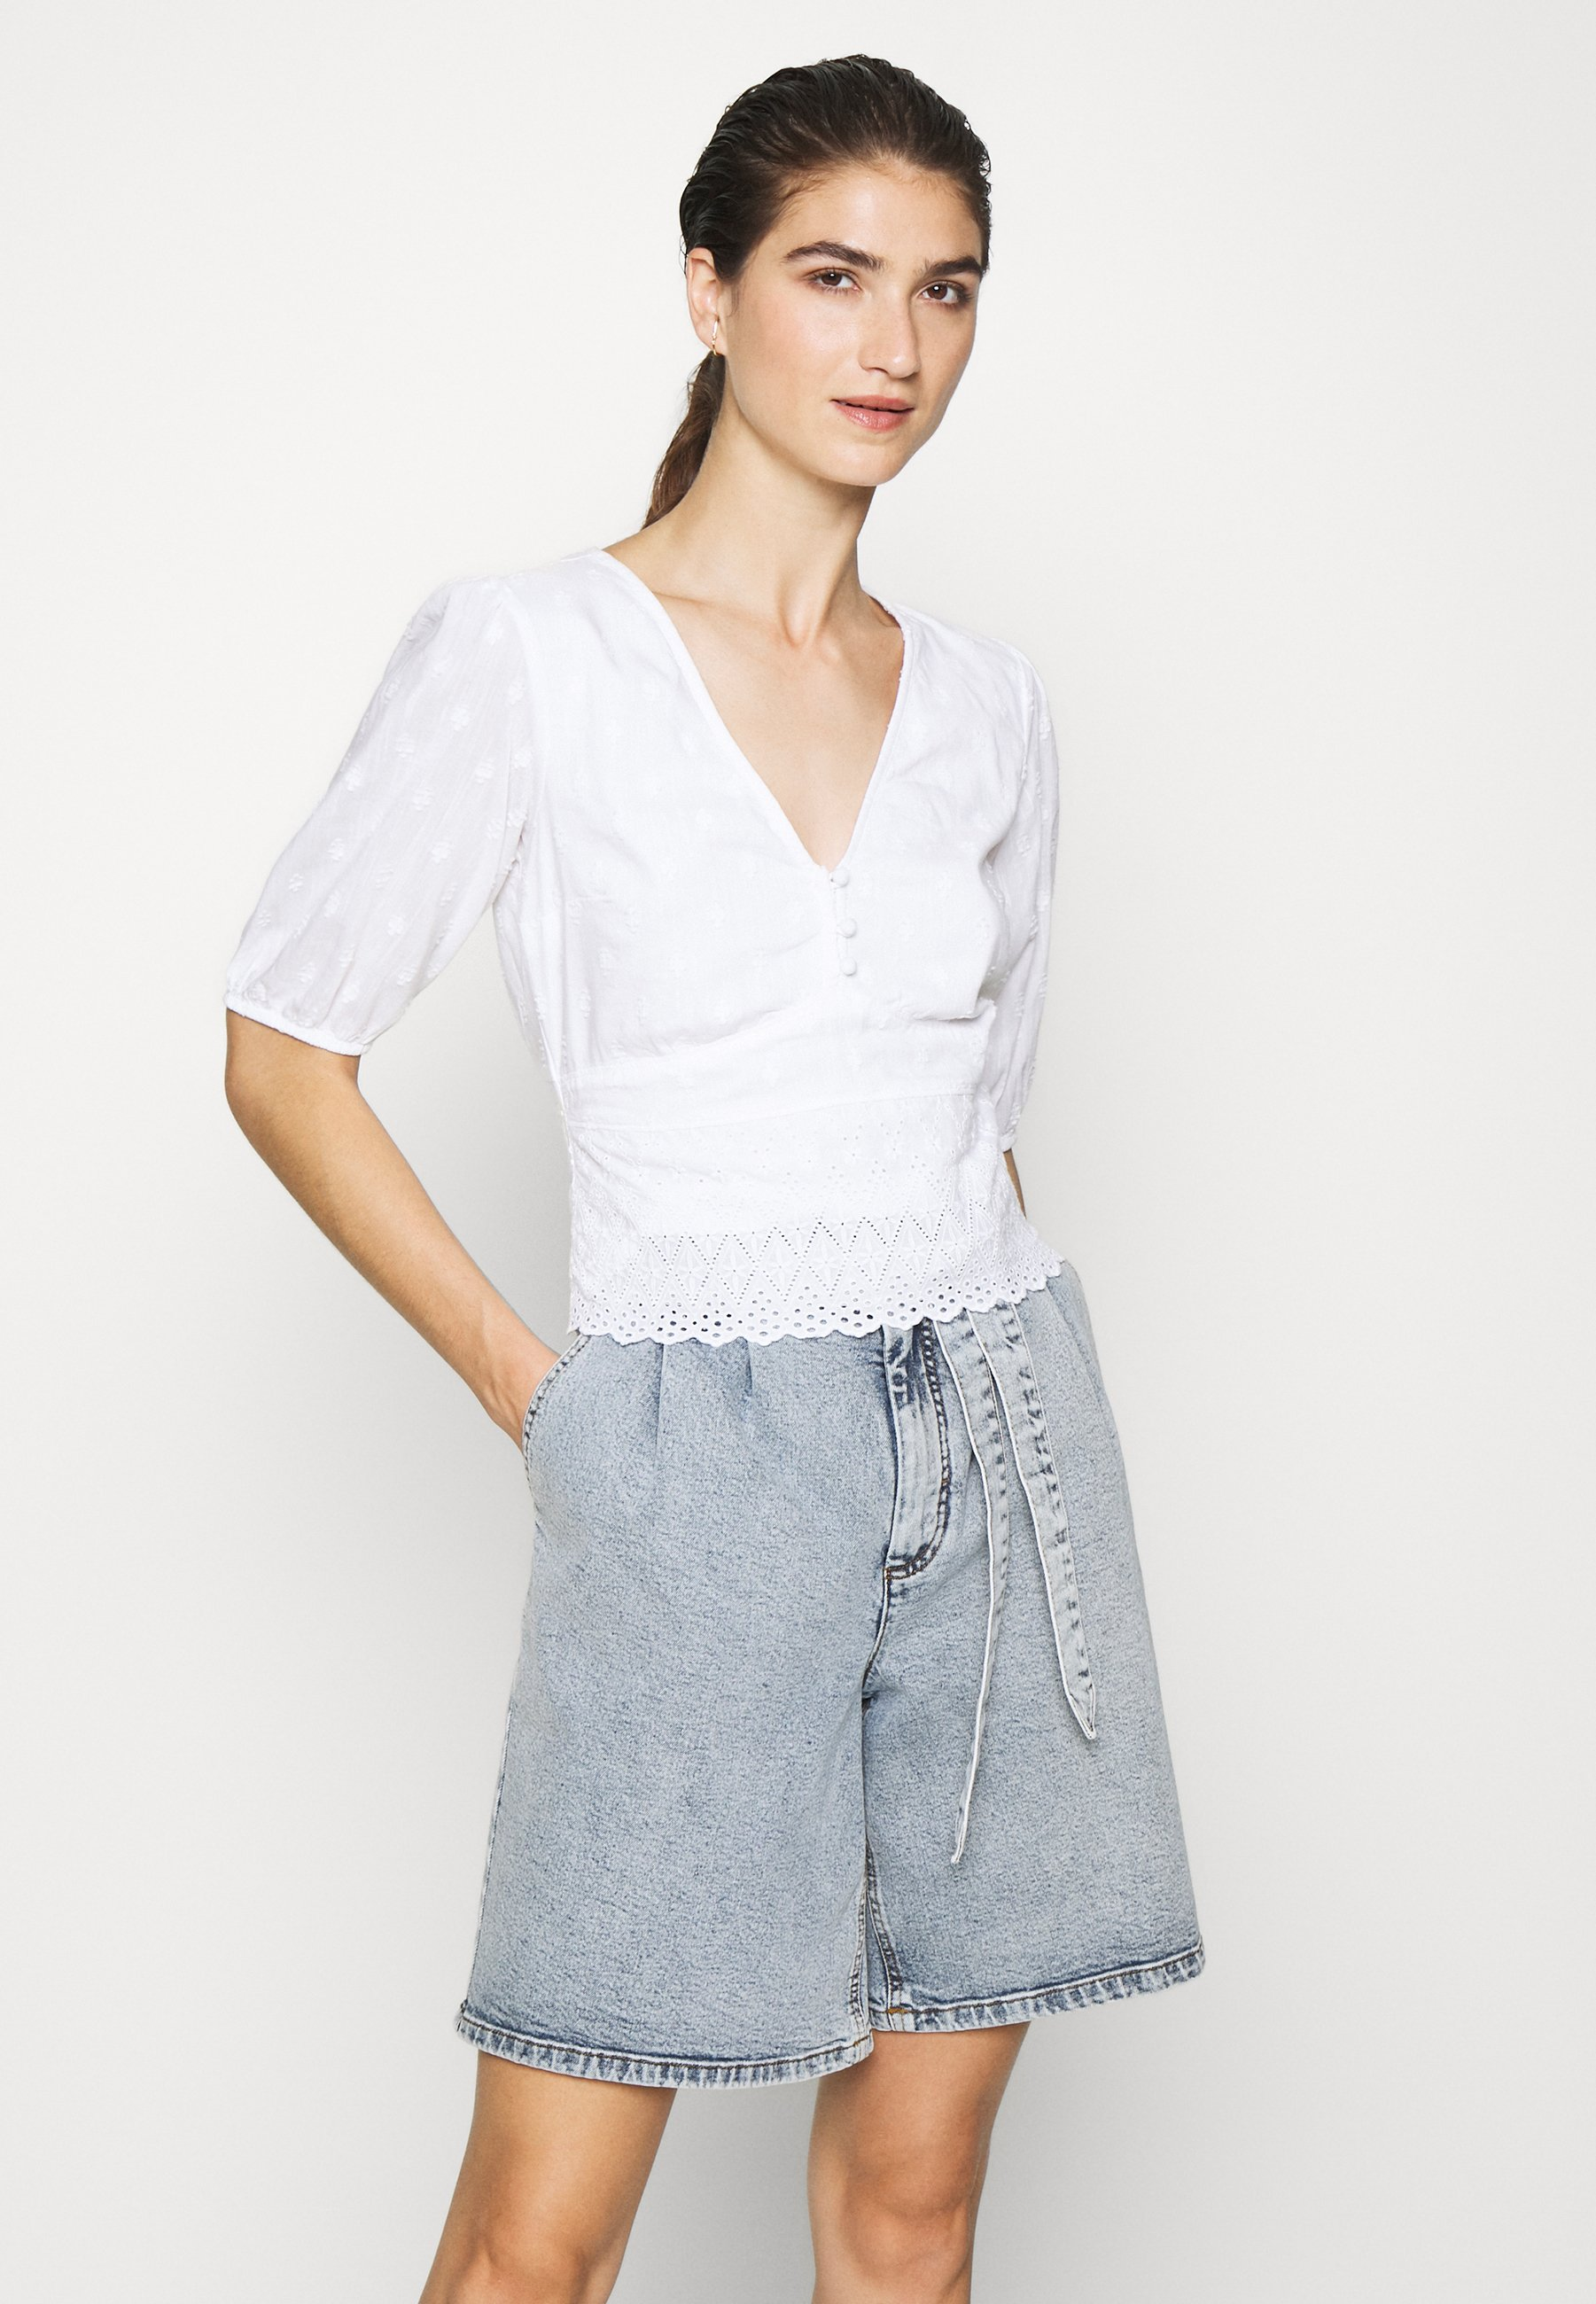 Abercrombie & Fitch Puff Sleeve Blouse - White